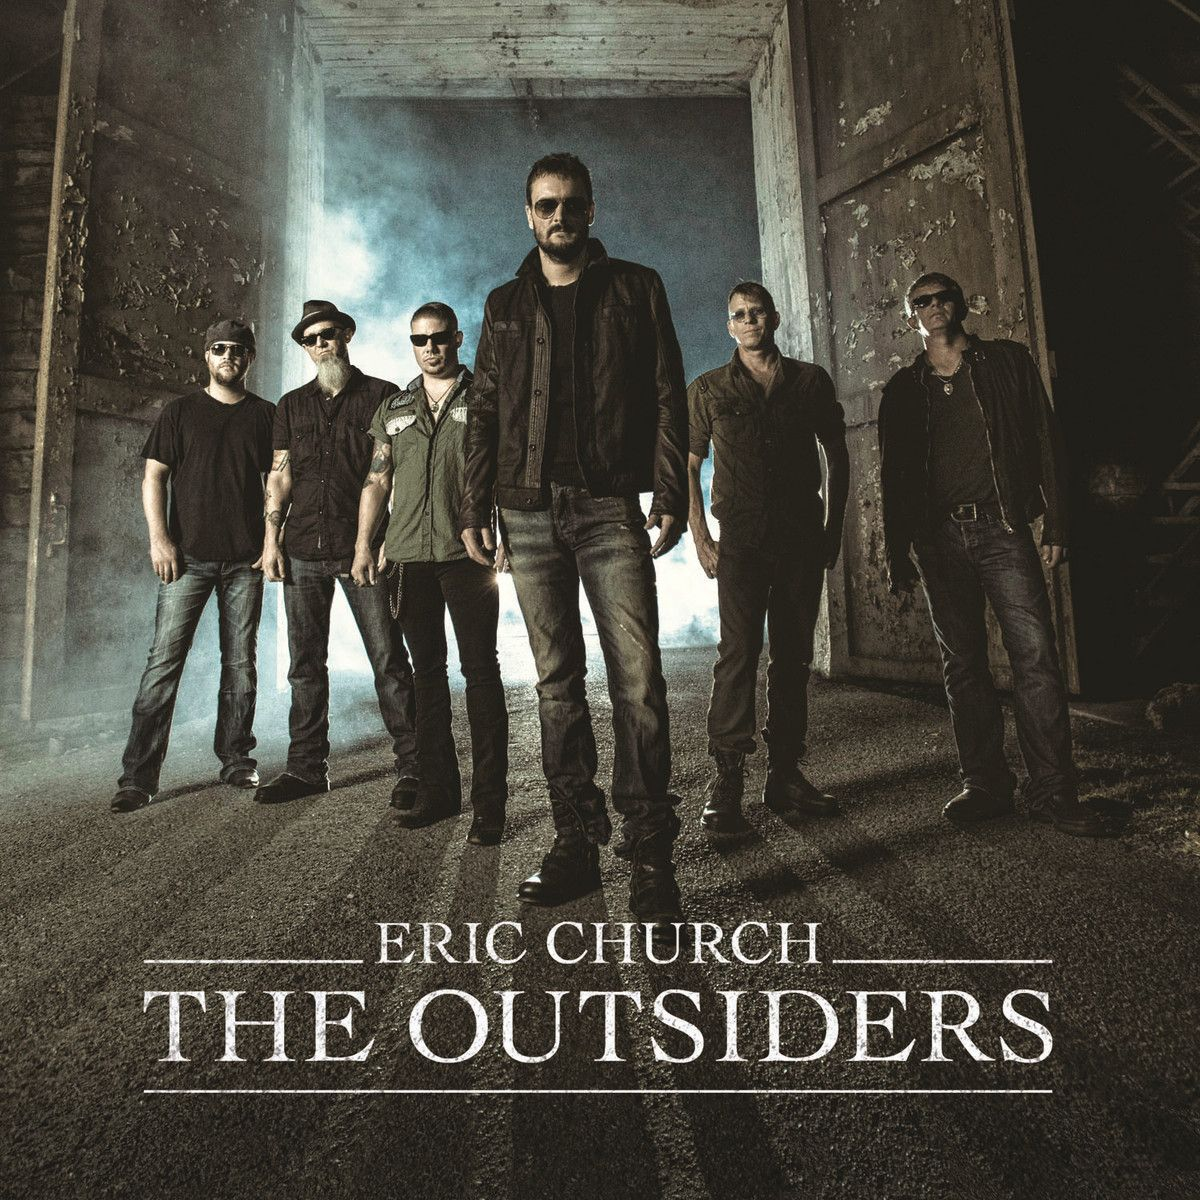 Eric Church - The Outsiders - Album Cover